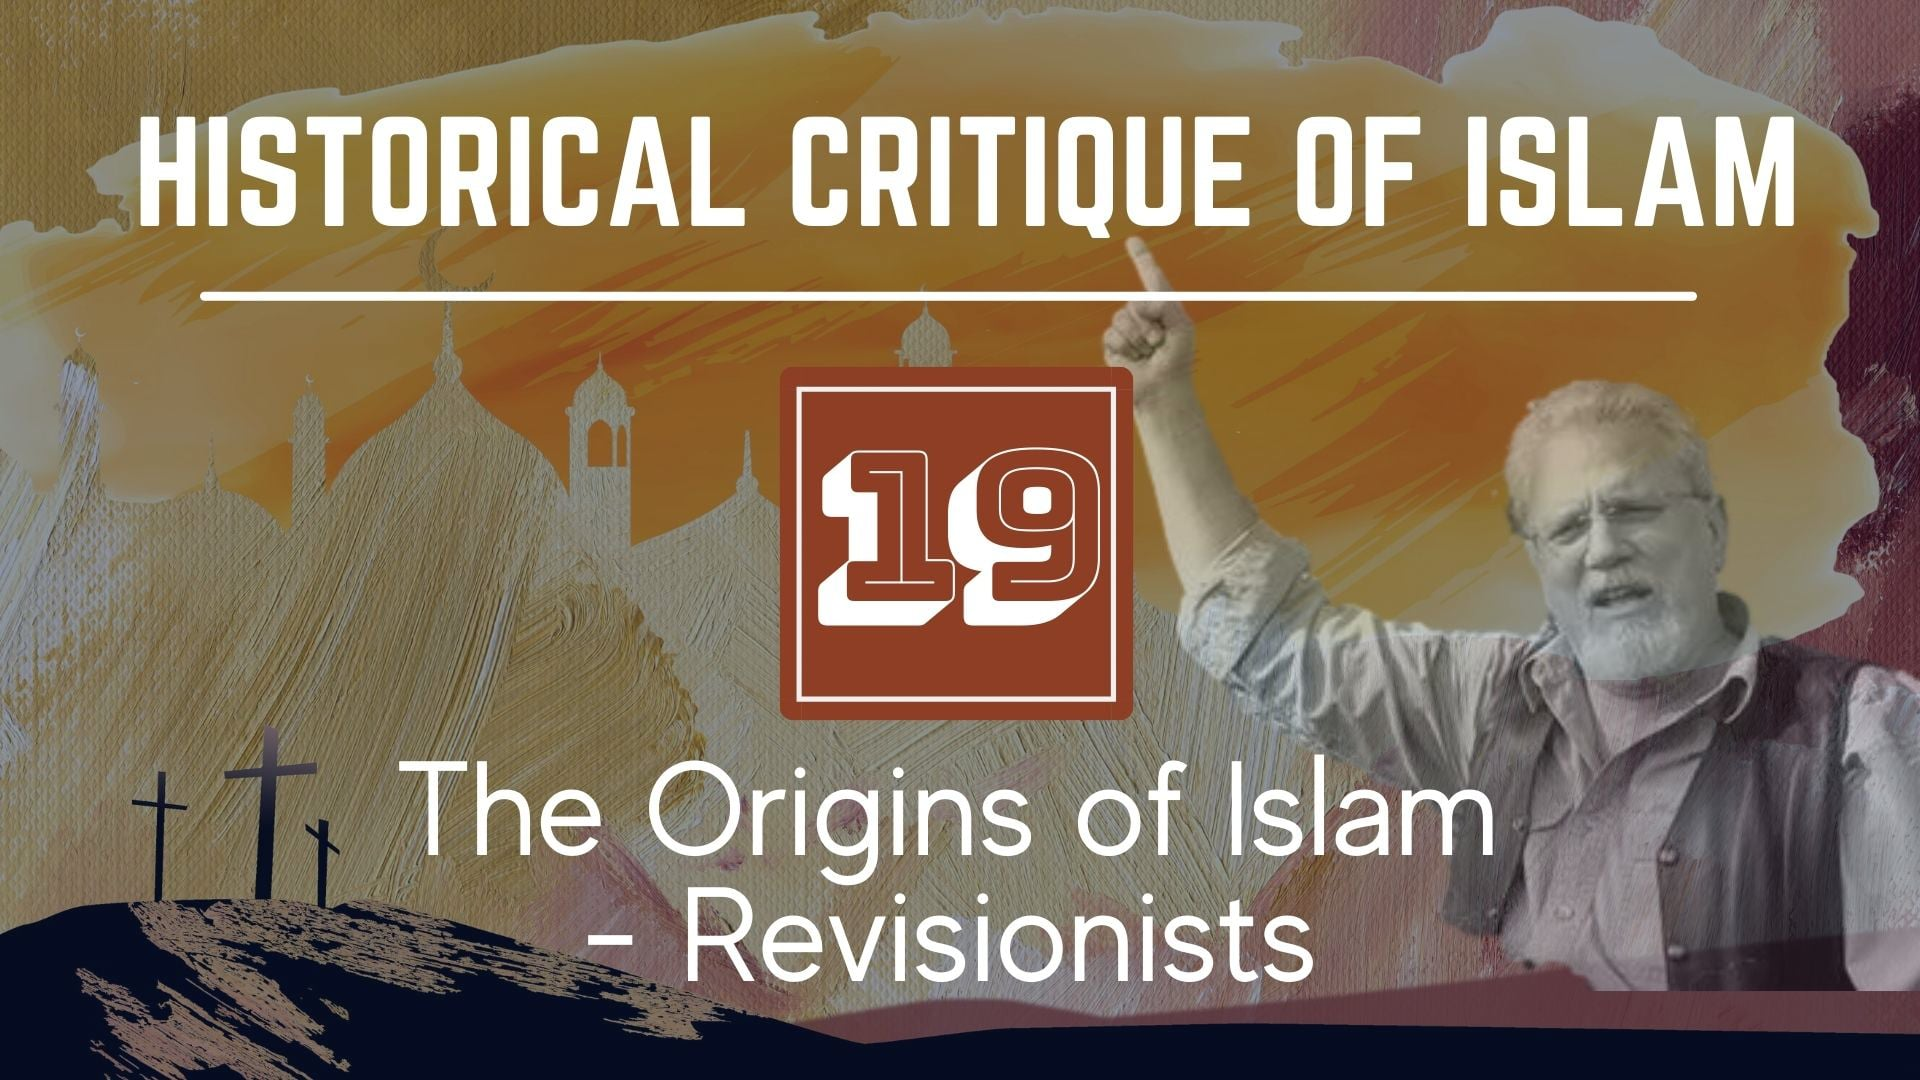 Historical Critique of Islam – The Origins of Islam – Revisionists